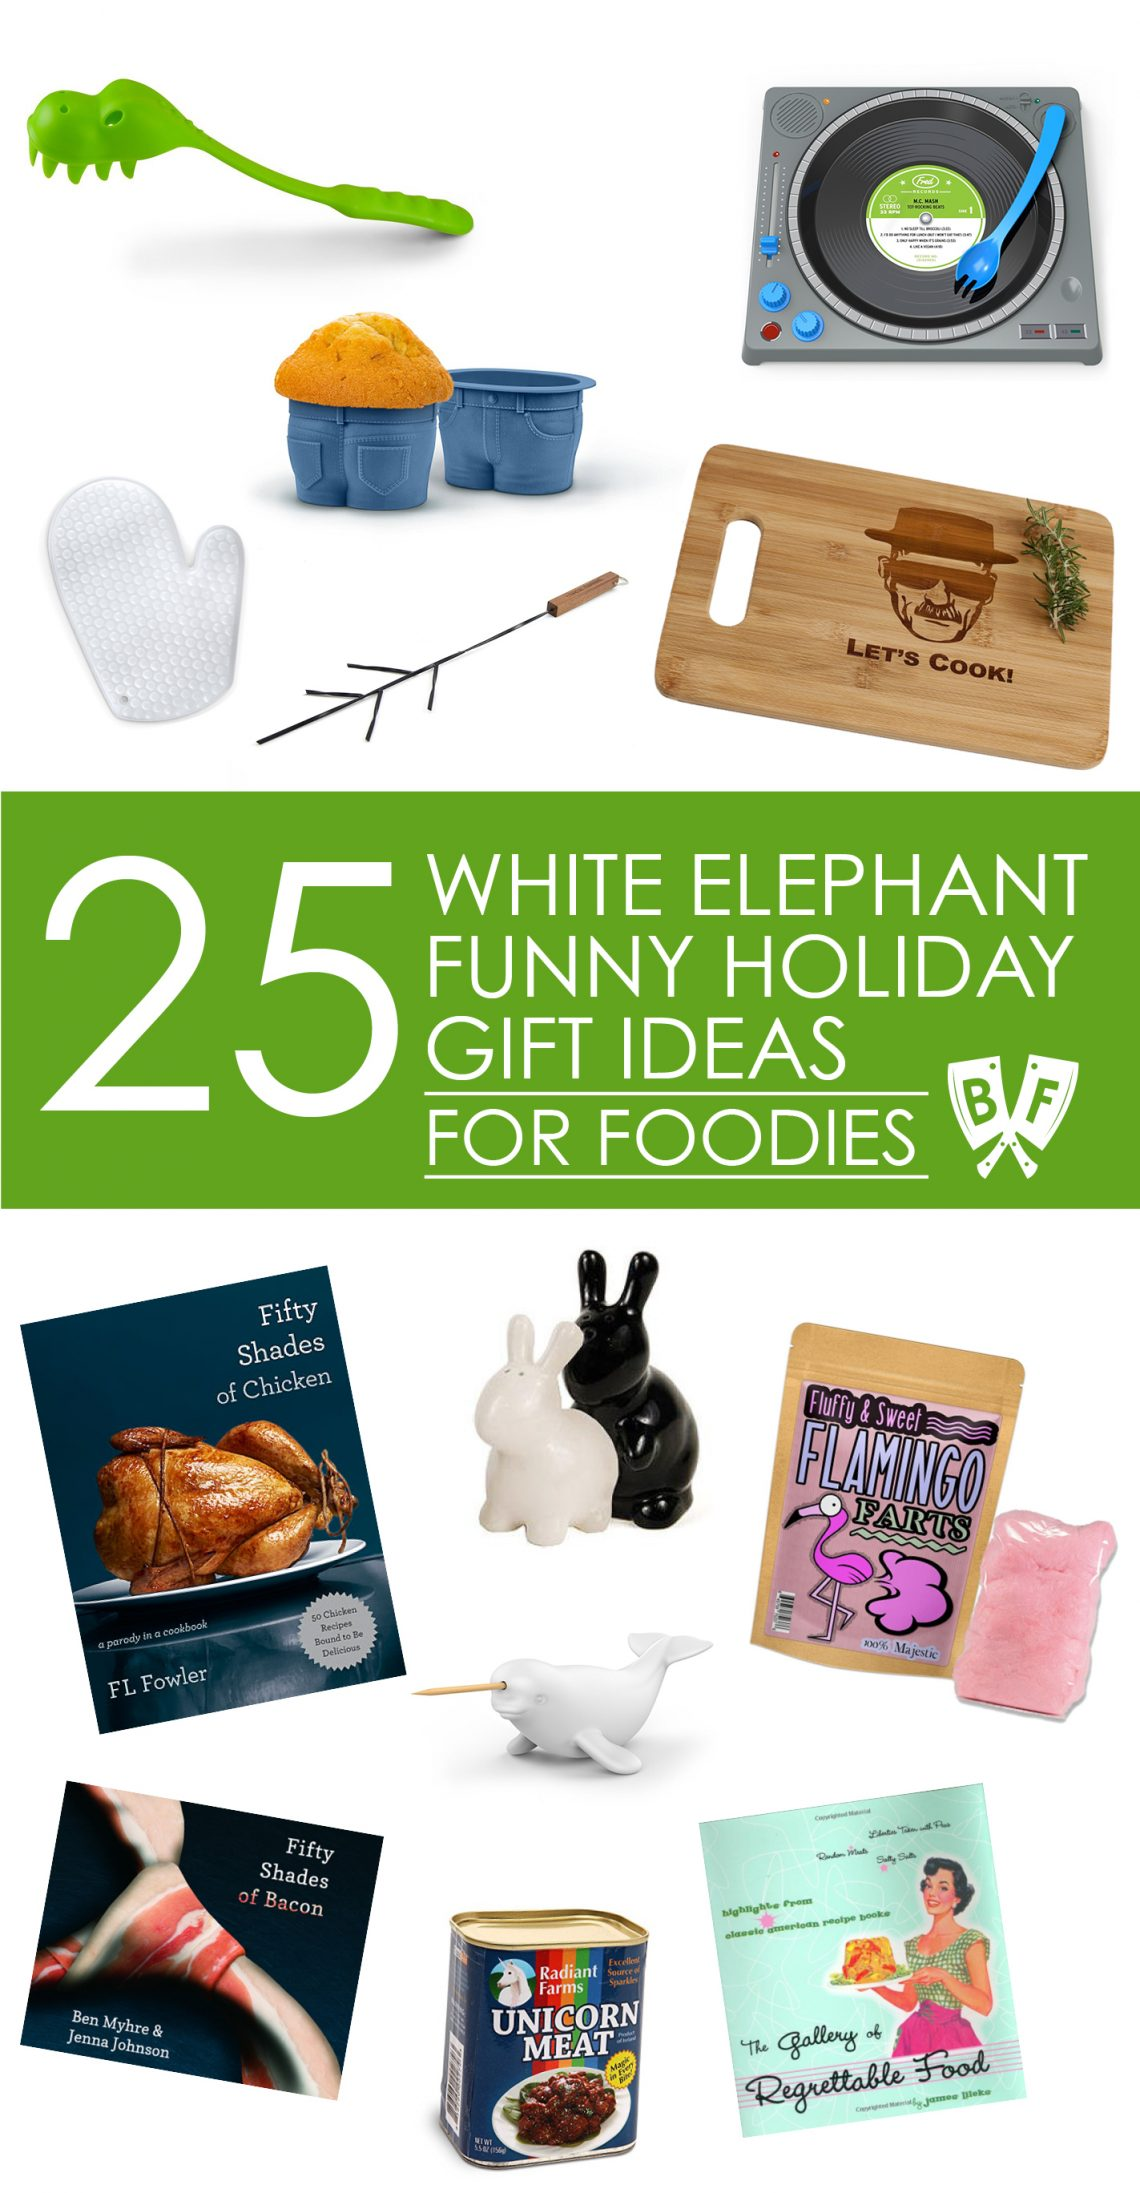 White Elephant Funny Holiday Gift Ideas for Foodies: Looking for funny stocking stuffers + holiday gift ideas for the food lovers in your life? This collection of 25 food + drink items is sure to be a hit!